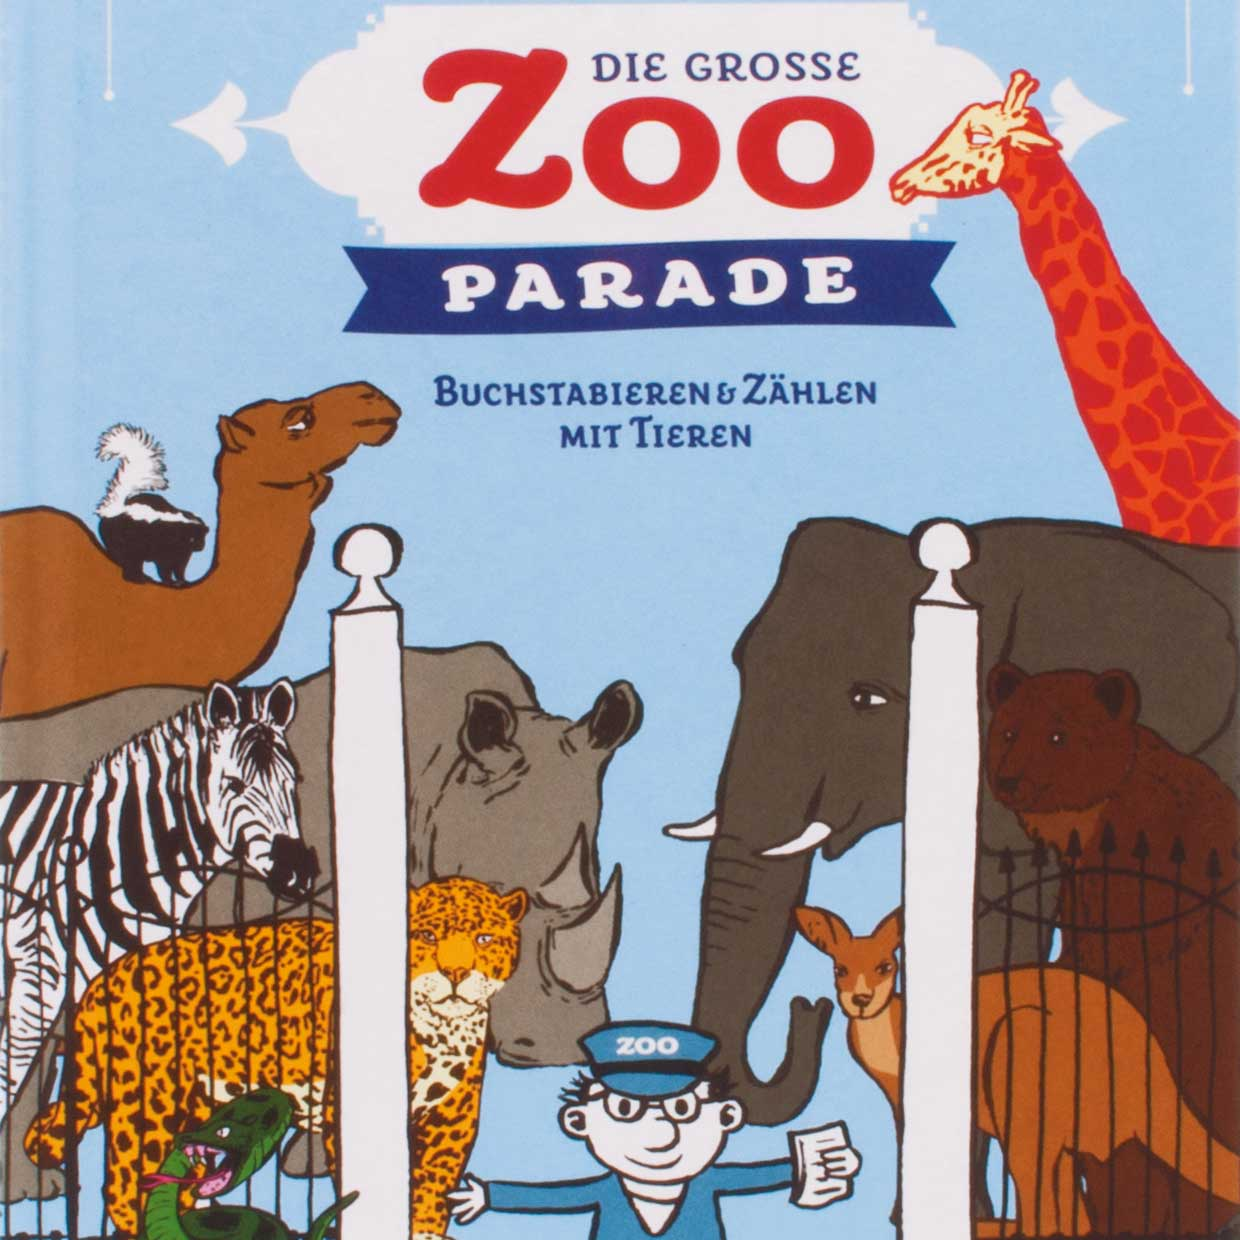 die grosse zooparade buchbesprechung afilii design for kids. Black Bedroom Furniture Sets. Home Design Ideas